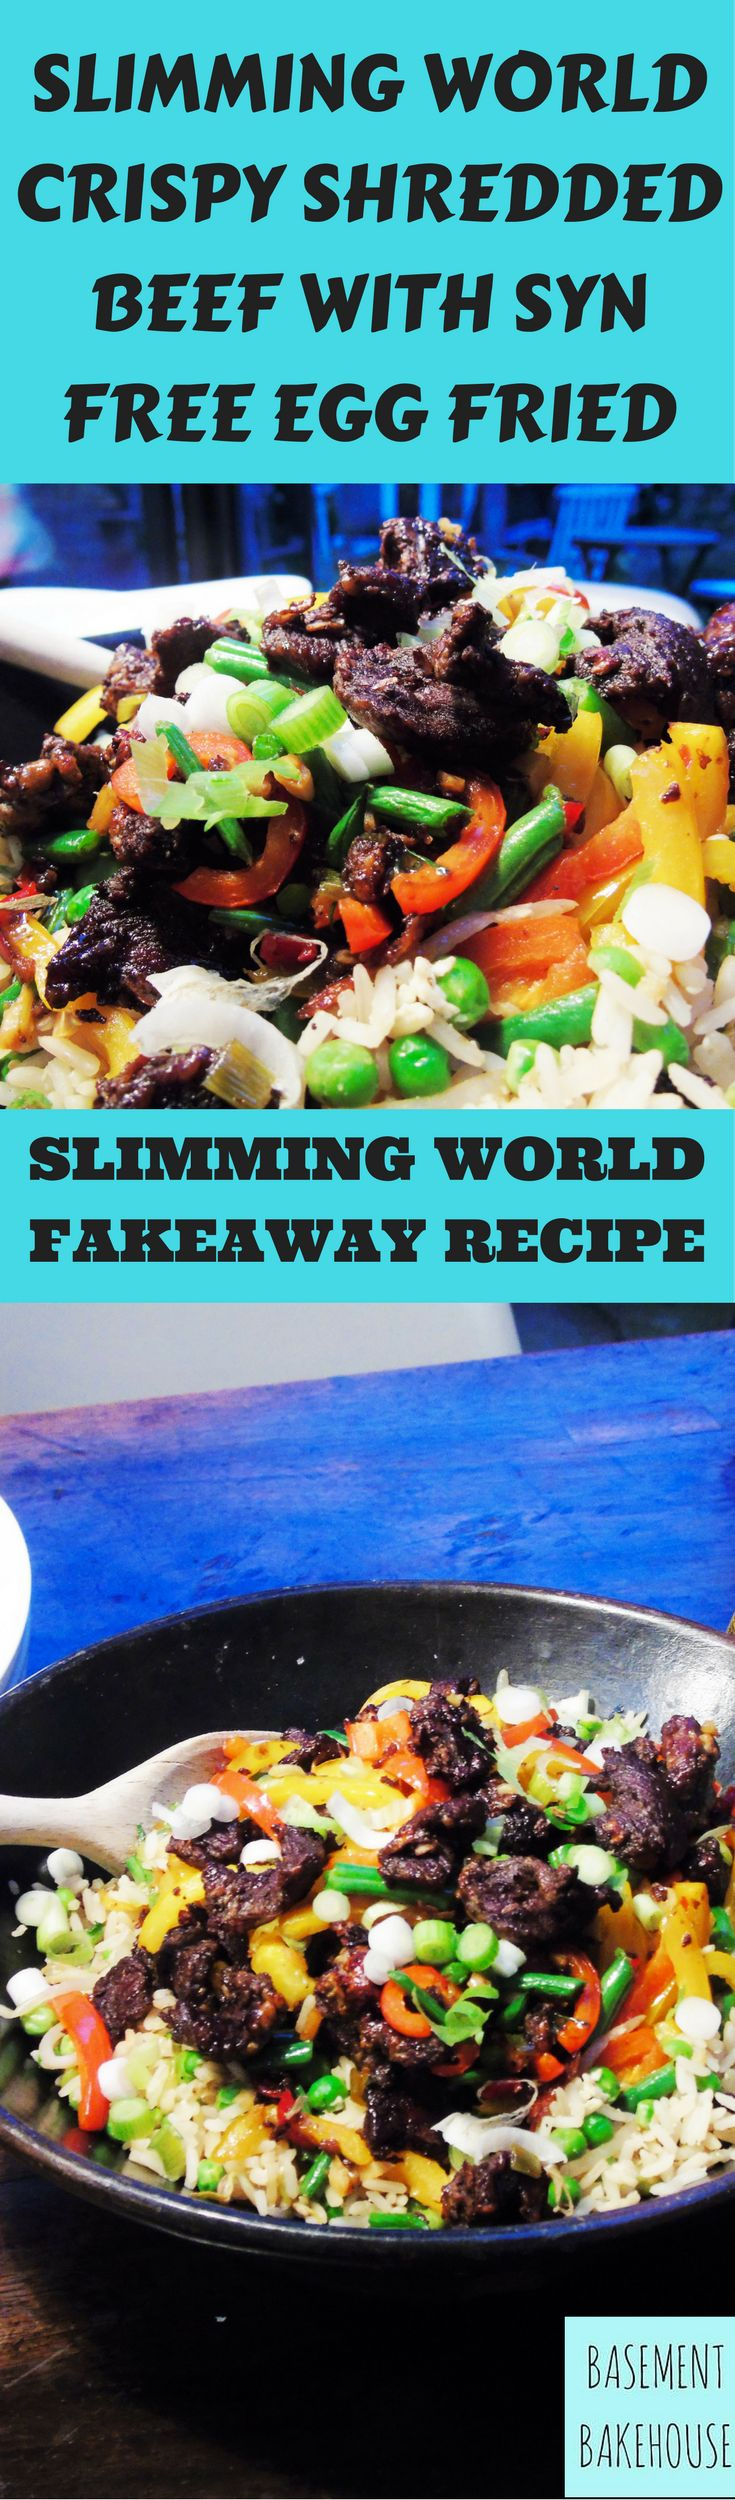 Crispy Chilli & Garlic Shredded Beef with Syn Free Egg Fried Rice - Slimming World Recipe - Fakeaway - Slimming World Fakeaway - Healthy Eating - Food Swap